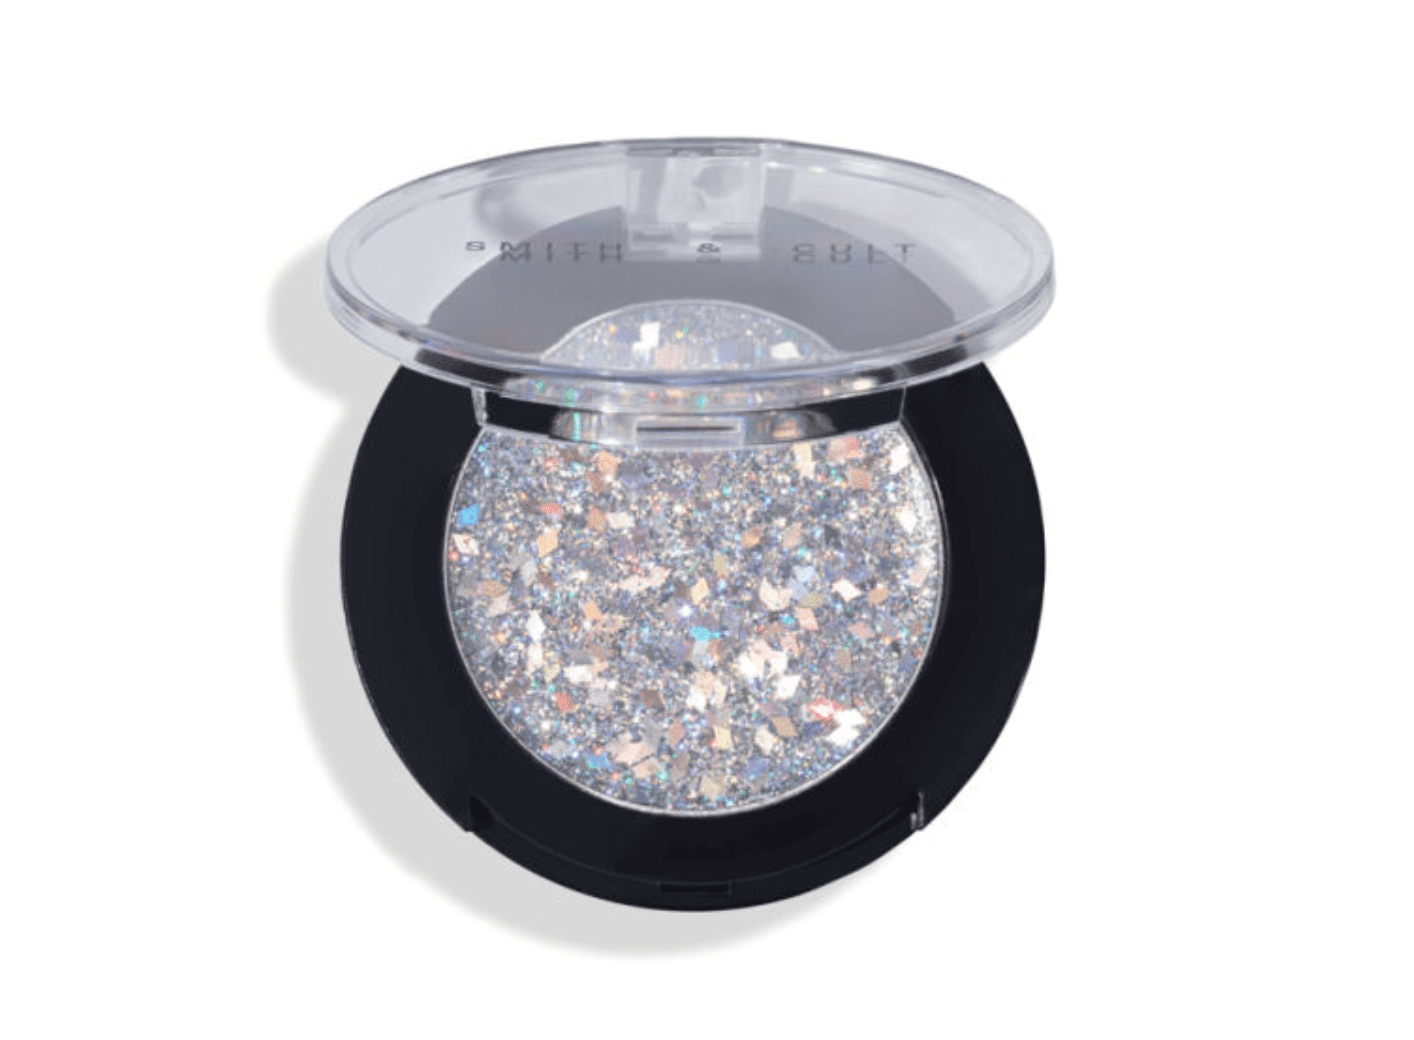 Smith & Cult Glitter - New Year's Eve Makeup